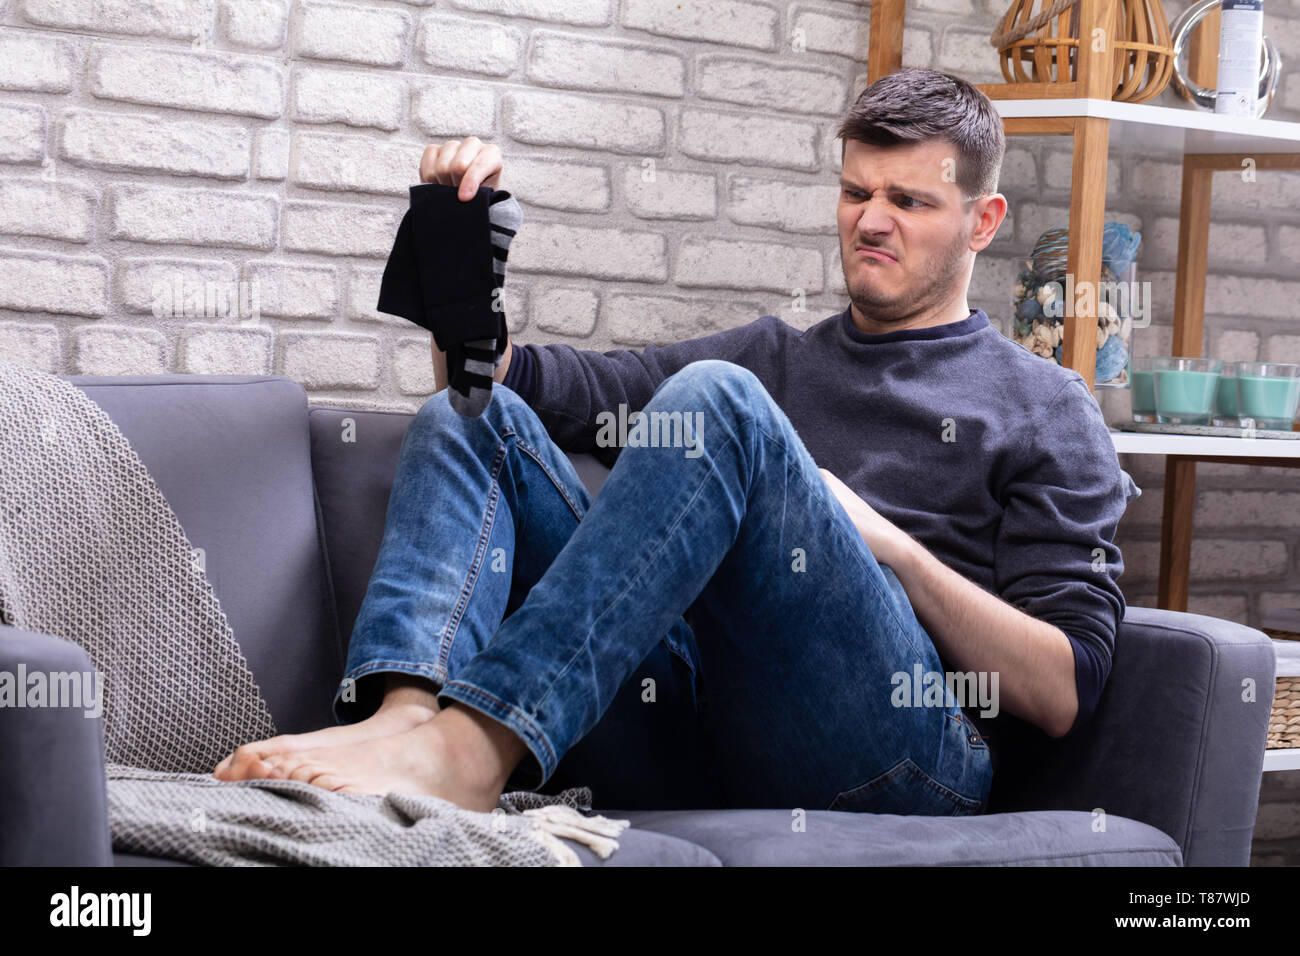 Young Man Sitting On Sofa Holding Dirty Socks - Stock Image